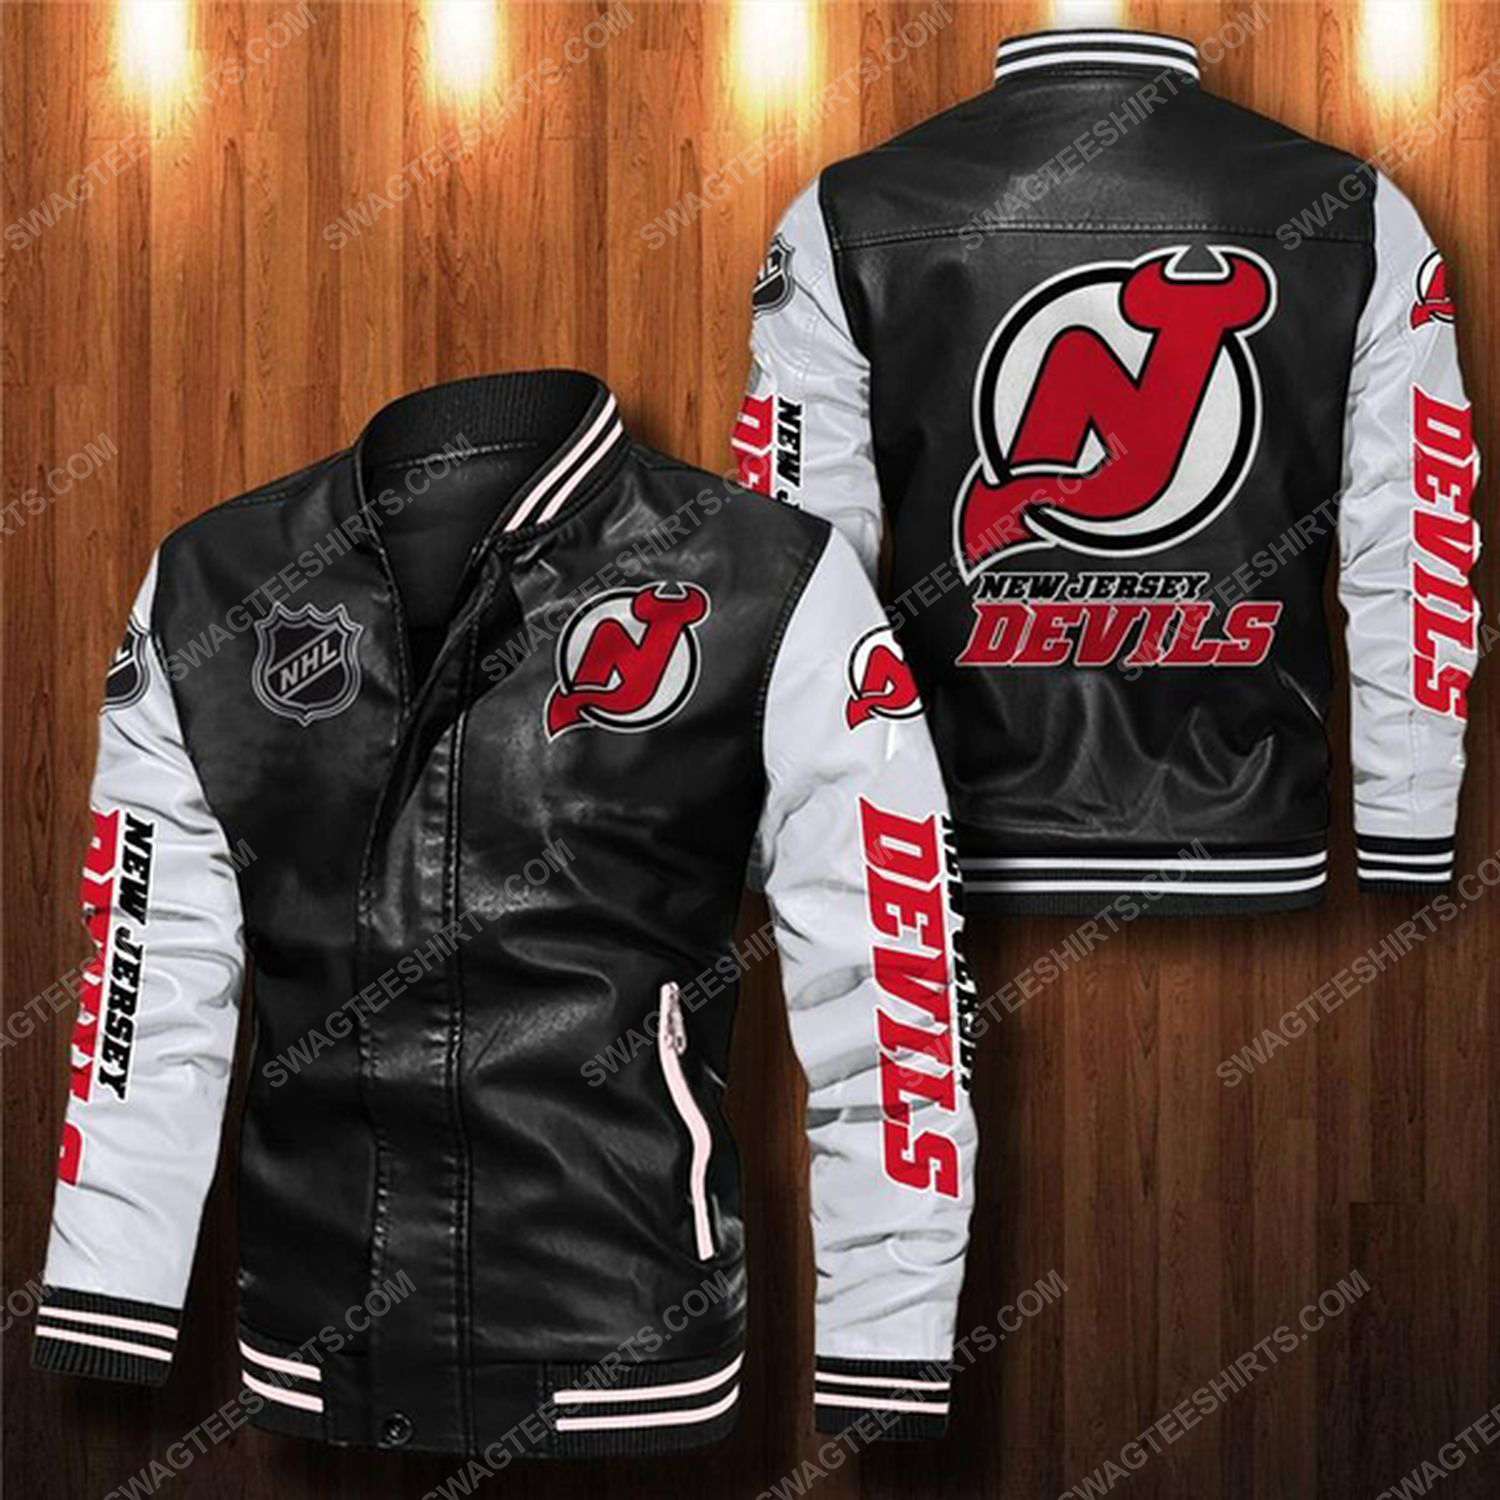 New jersey devils all over print leather bomber jacket - white